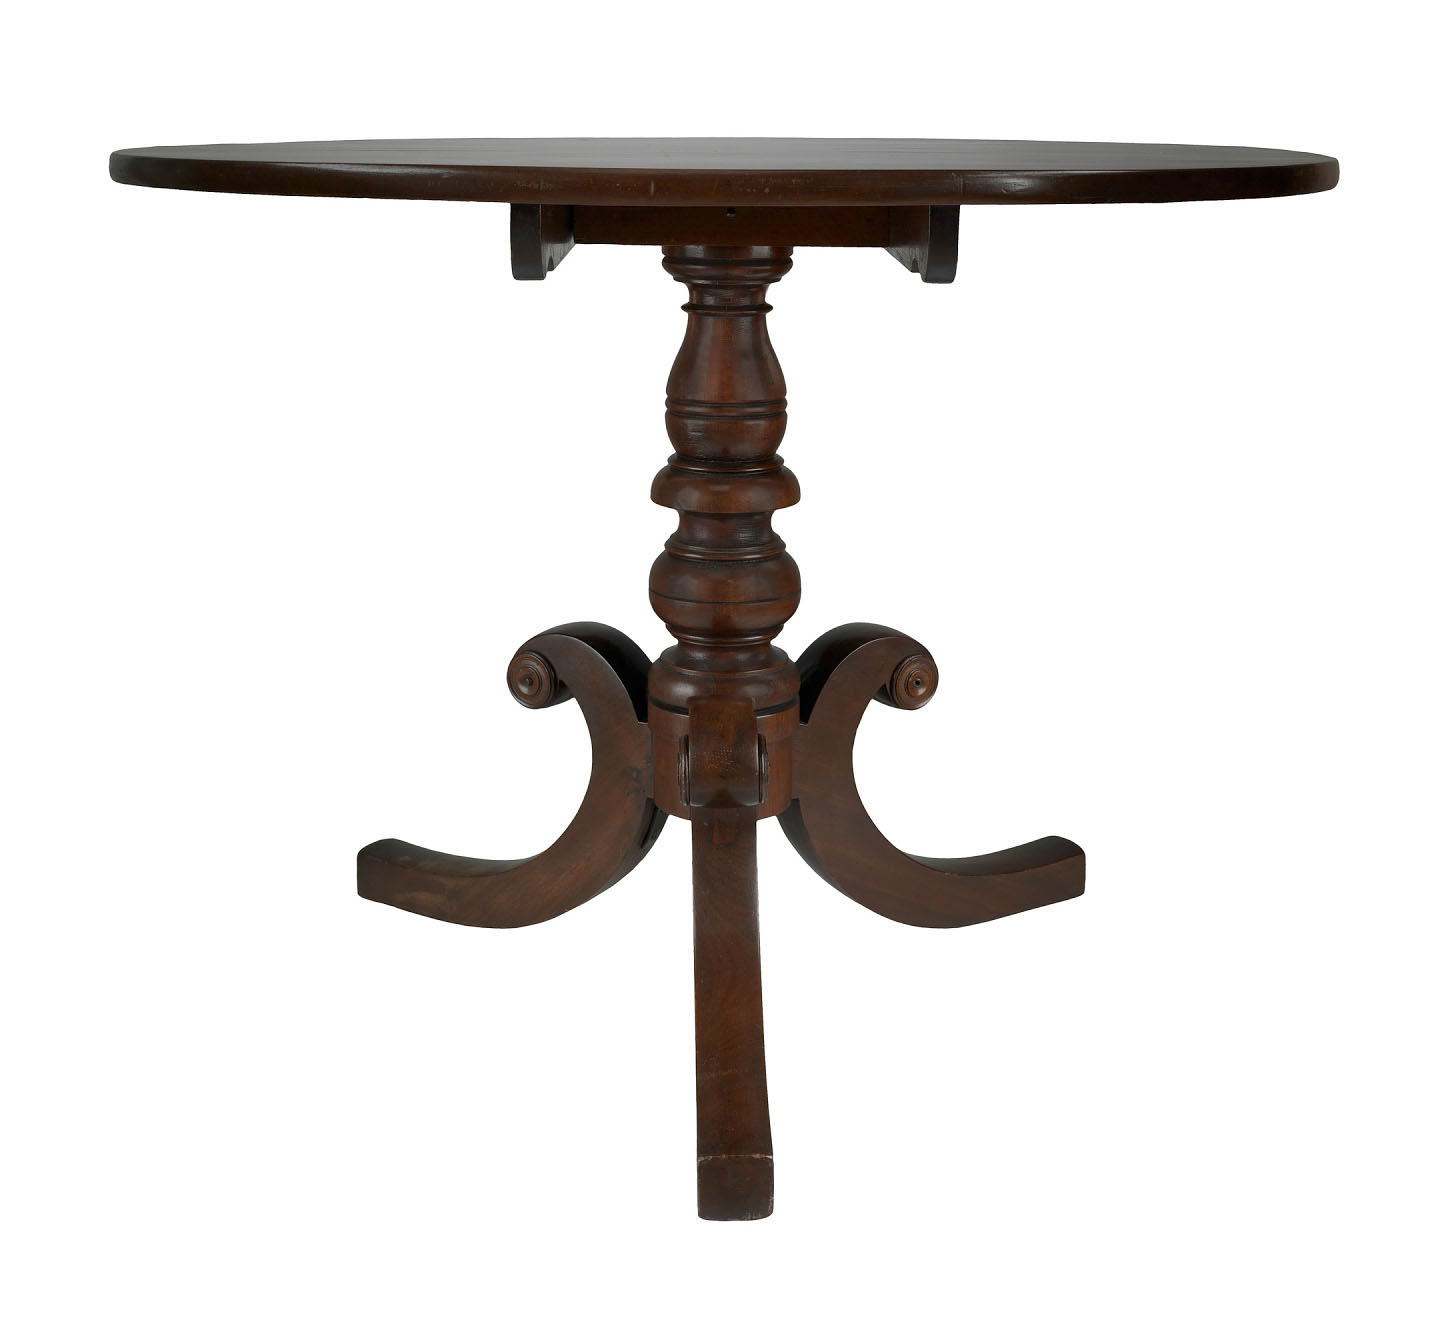 A wooden table, appears to be mahogany, with a rounded wooden top.